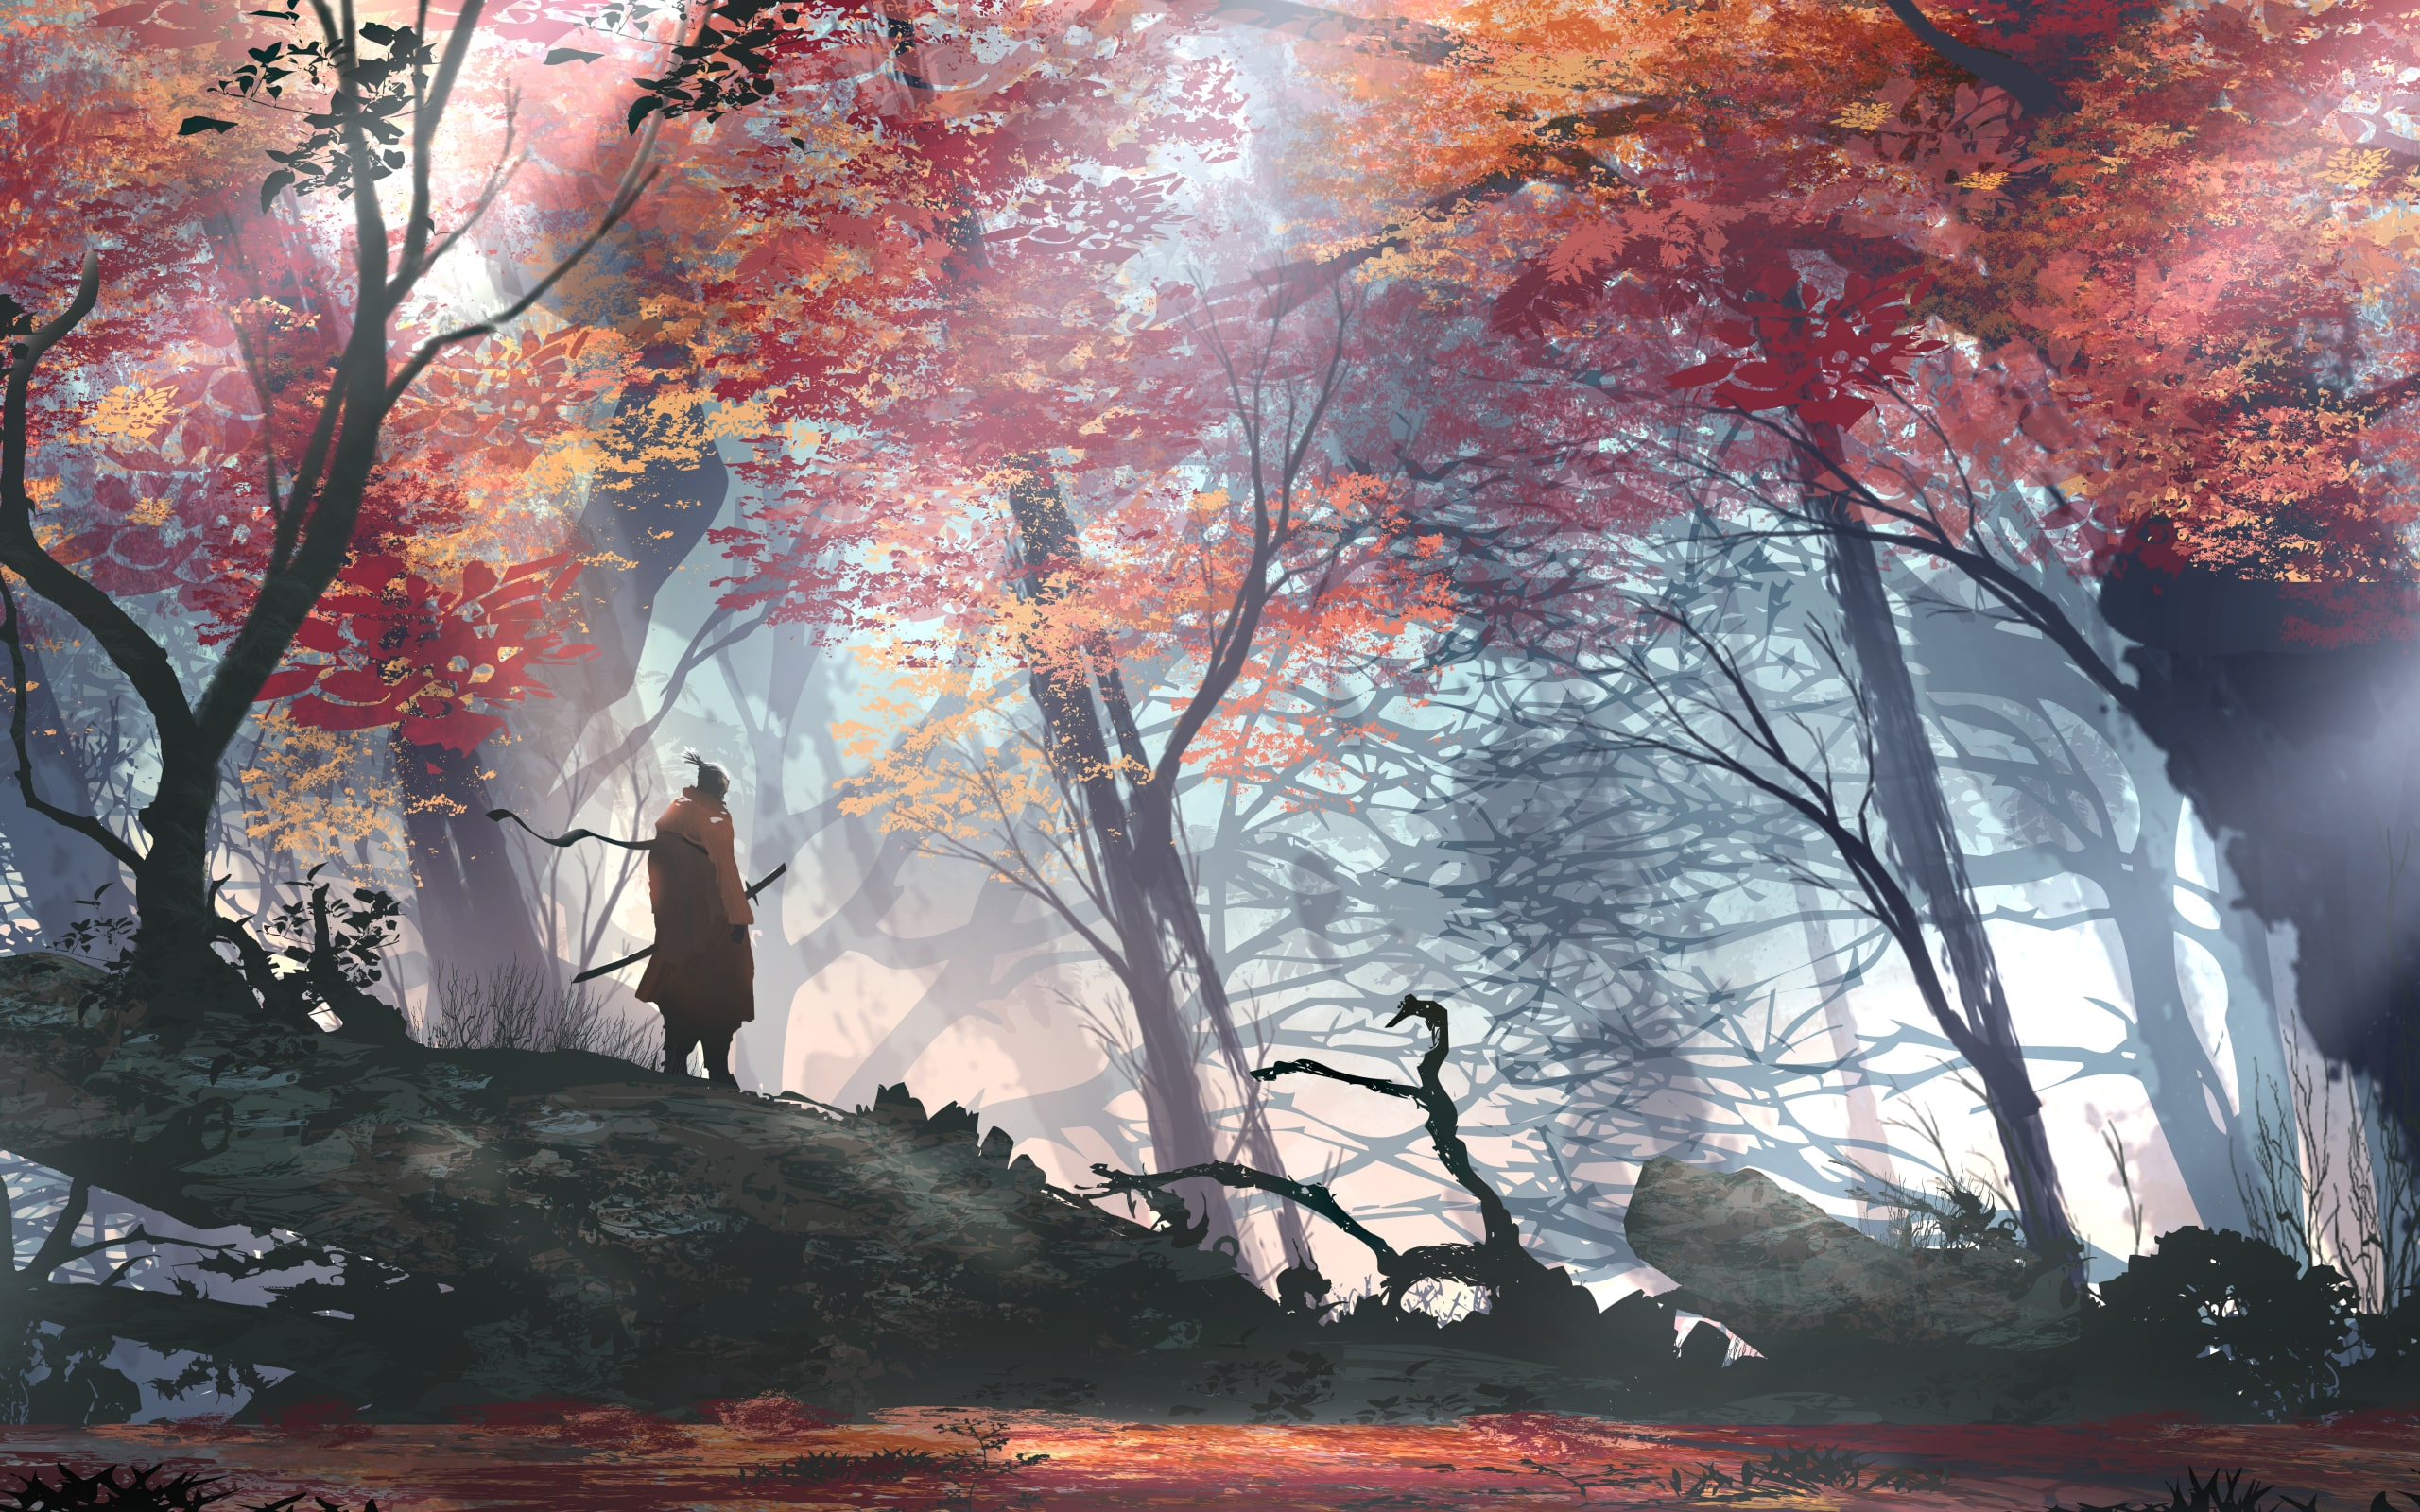 Wallpaper Of Video Game Sekiro Shadows Die Twice Background Hd Image